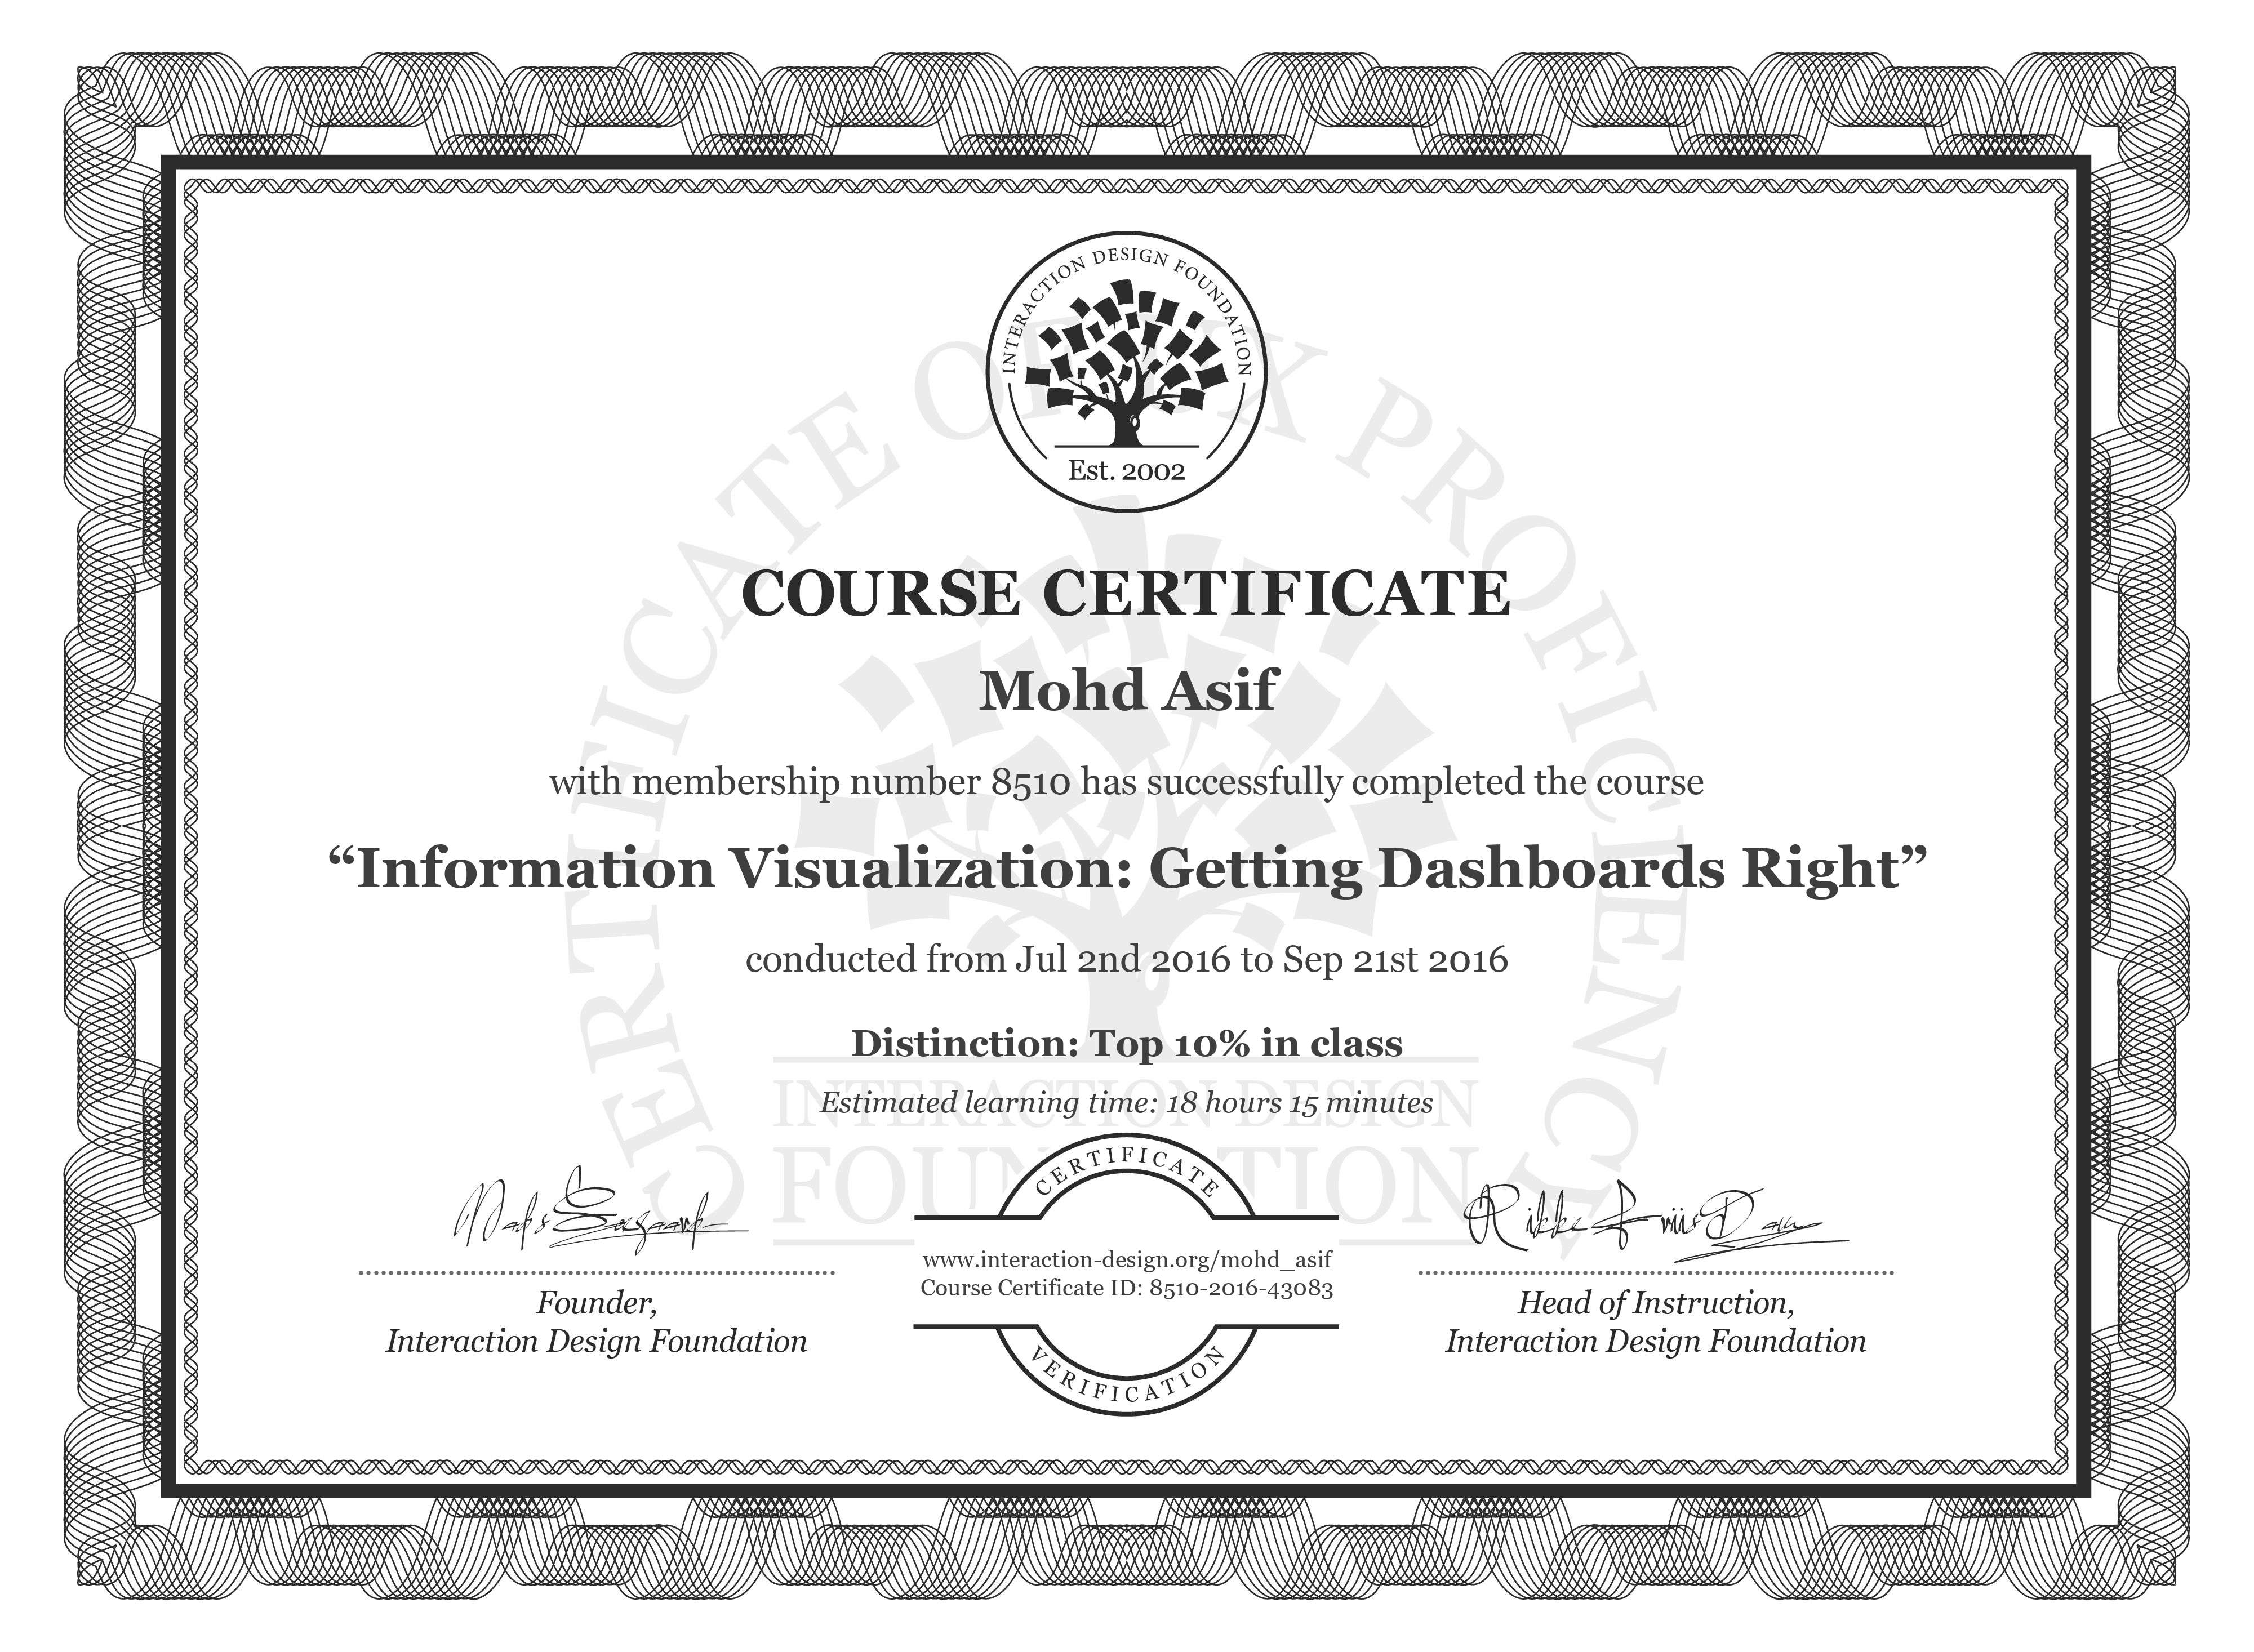 Mohd Asif's Course Certificate: Information Visualization: Getting Dashboards Right